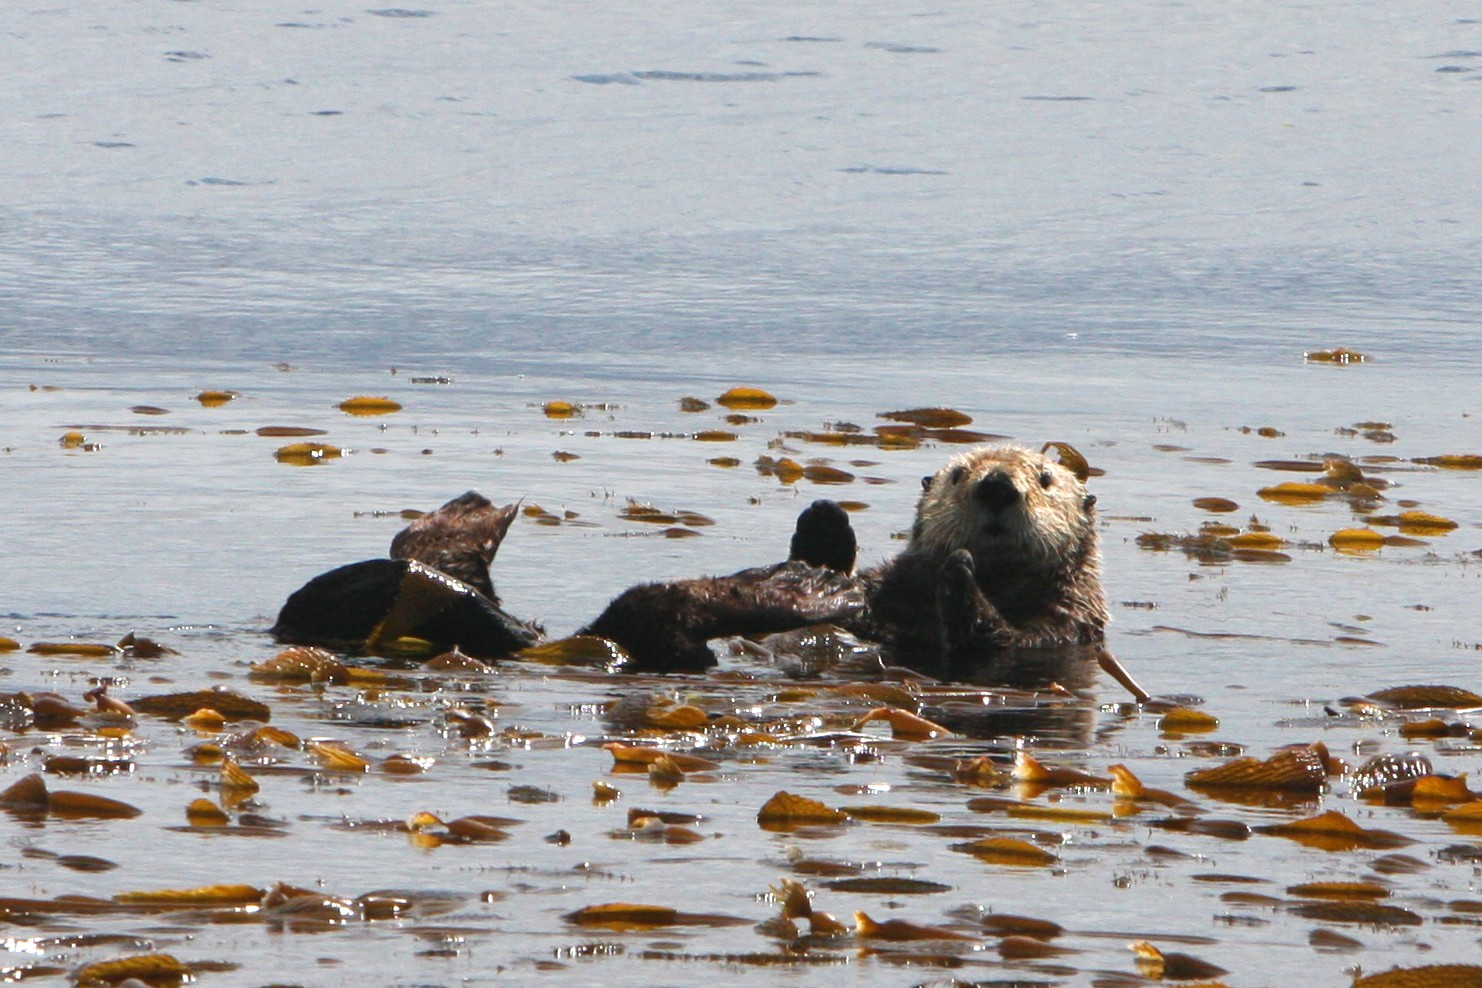 Sea Otter Is Surprised to Have an Audience